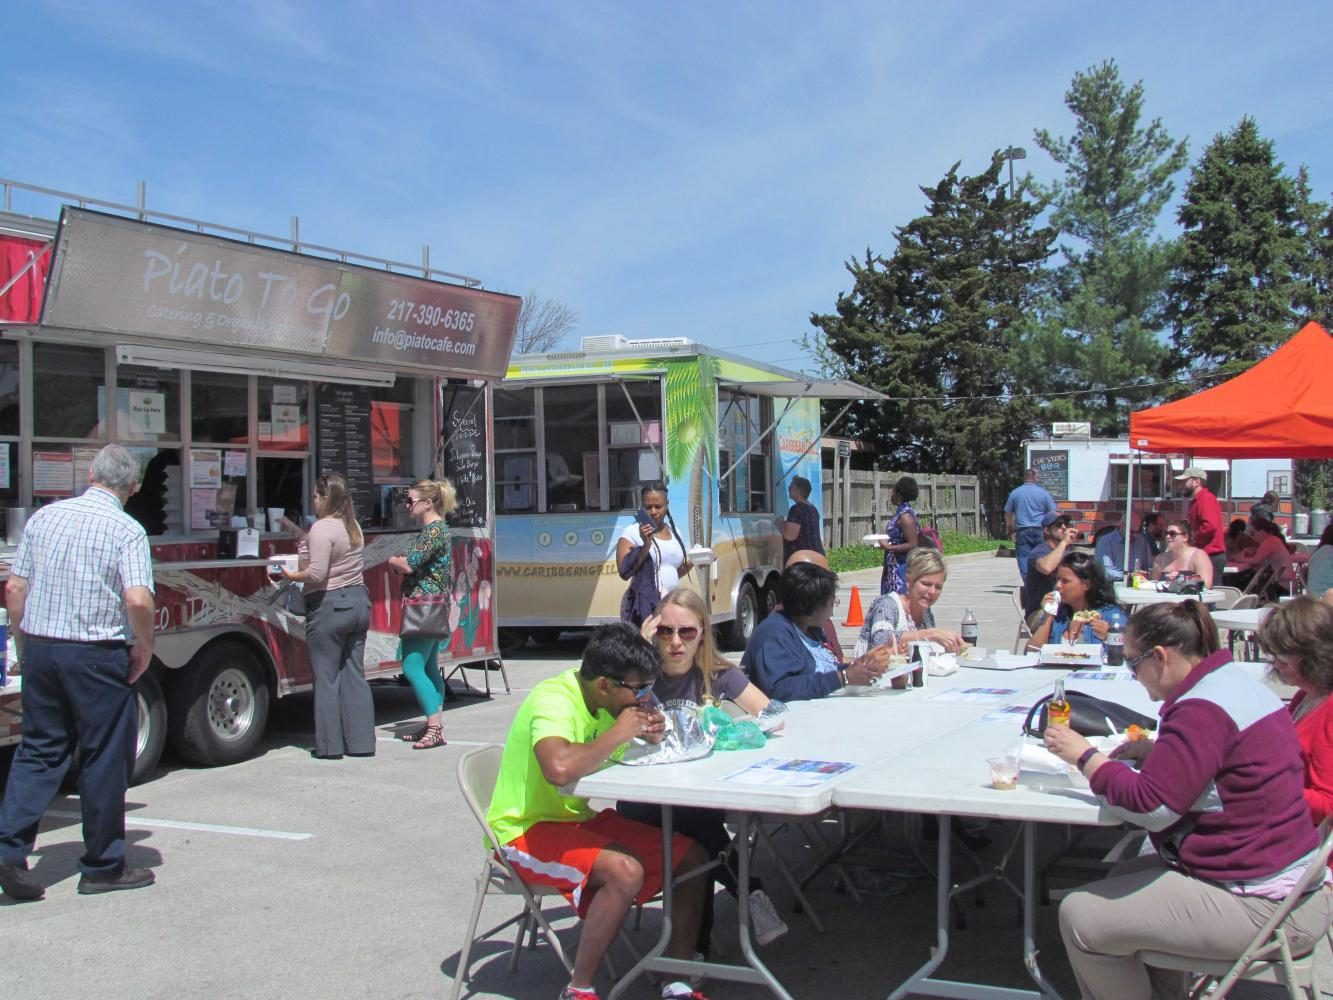 Food+Trucks+parked+at+the+Urbana+Food+Truck+Rally+on+Tuesday+at+the+Urbana+Civic+Center.+The+Urbana+Food+Truck+rally+takes+place+on+the+last+Tuesday+of+every+month+from+now+until+late+October.+